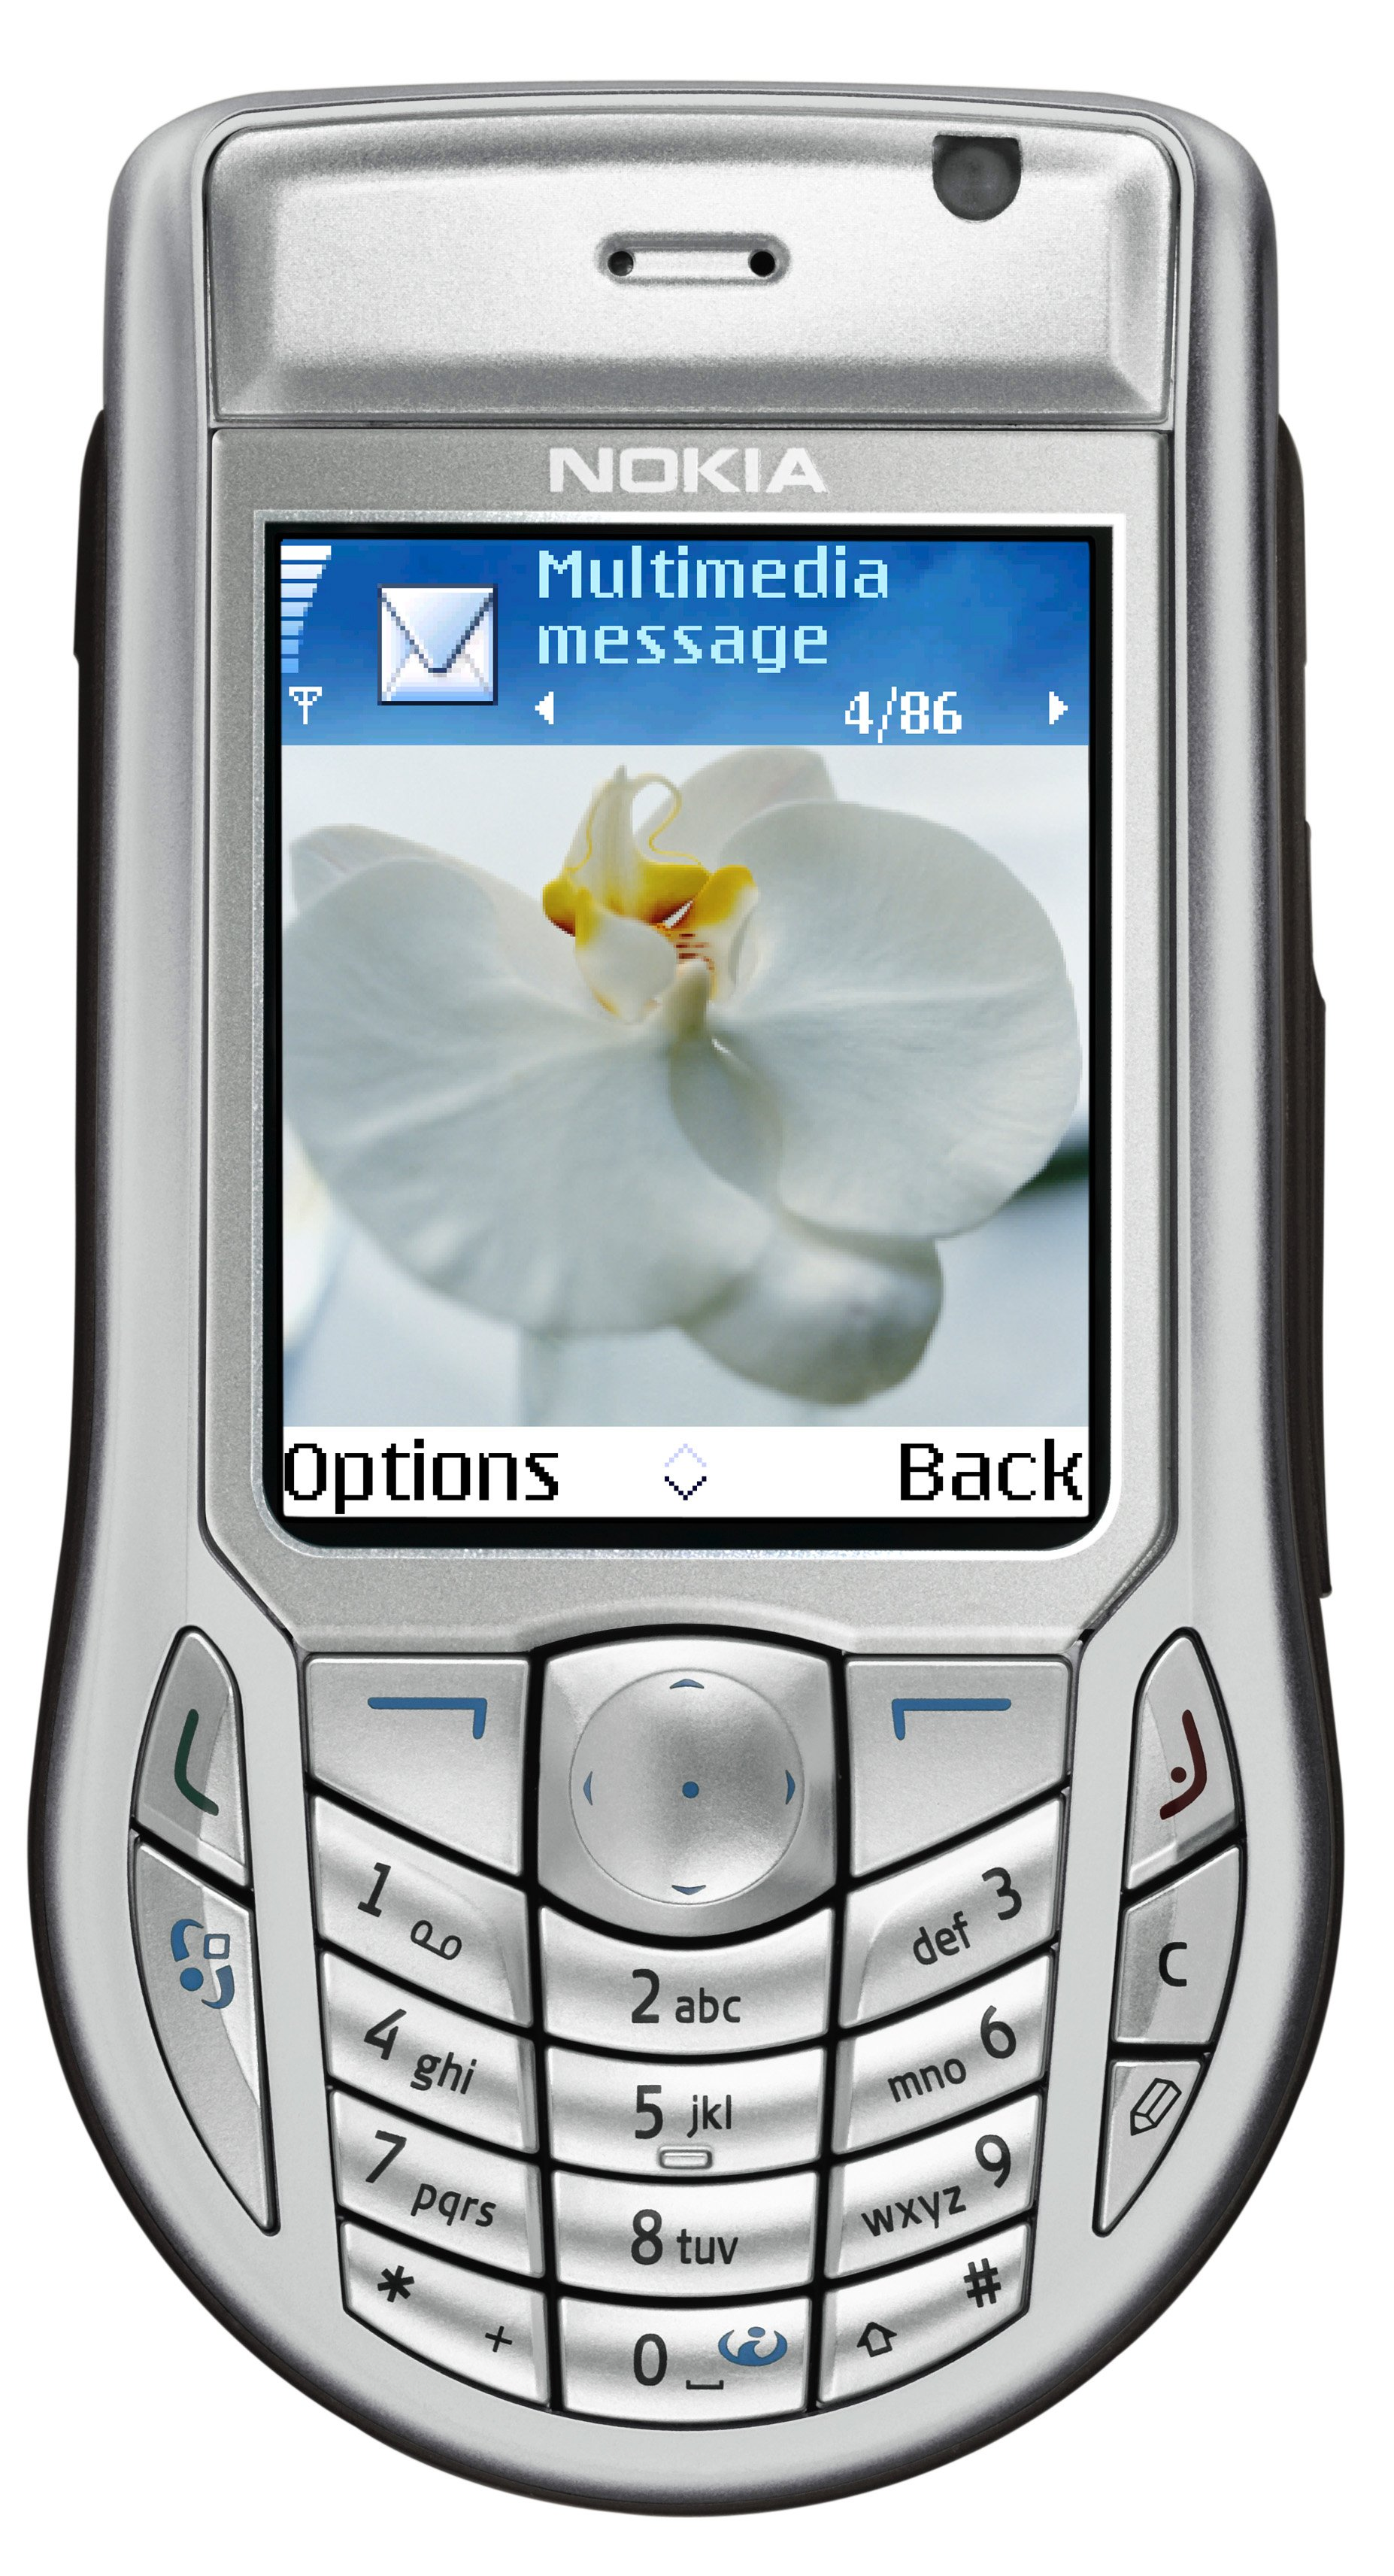 The Symbian Operating System